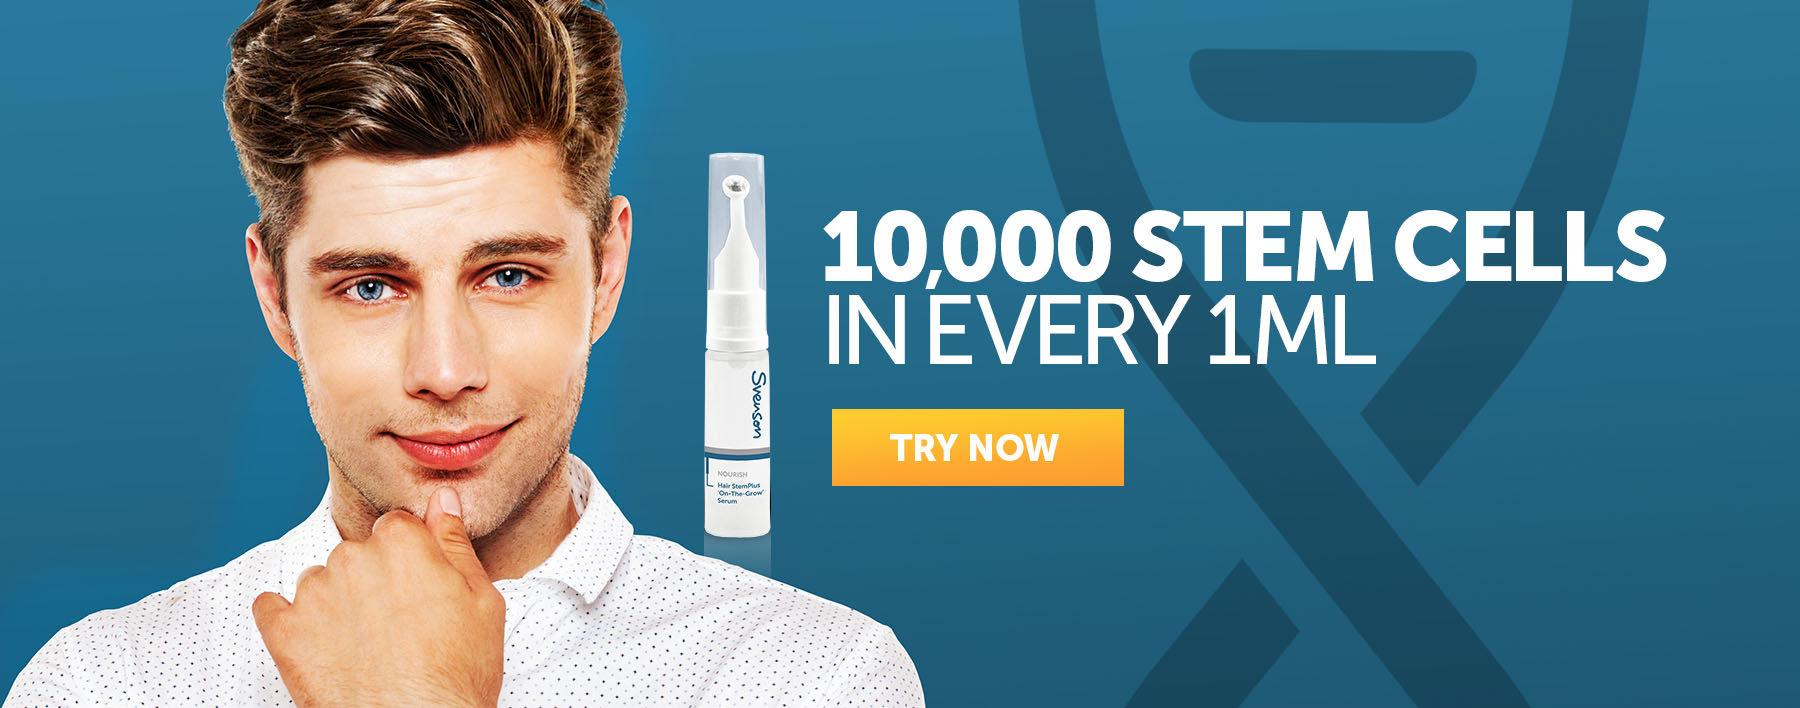 10,000 Stem Cells in every 1ml